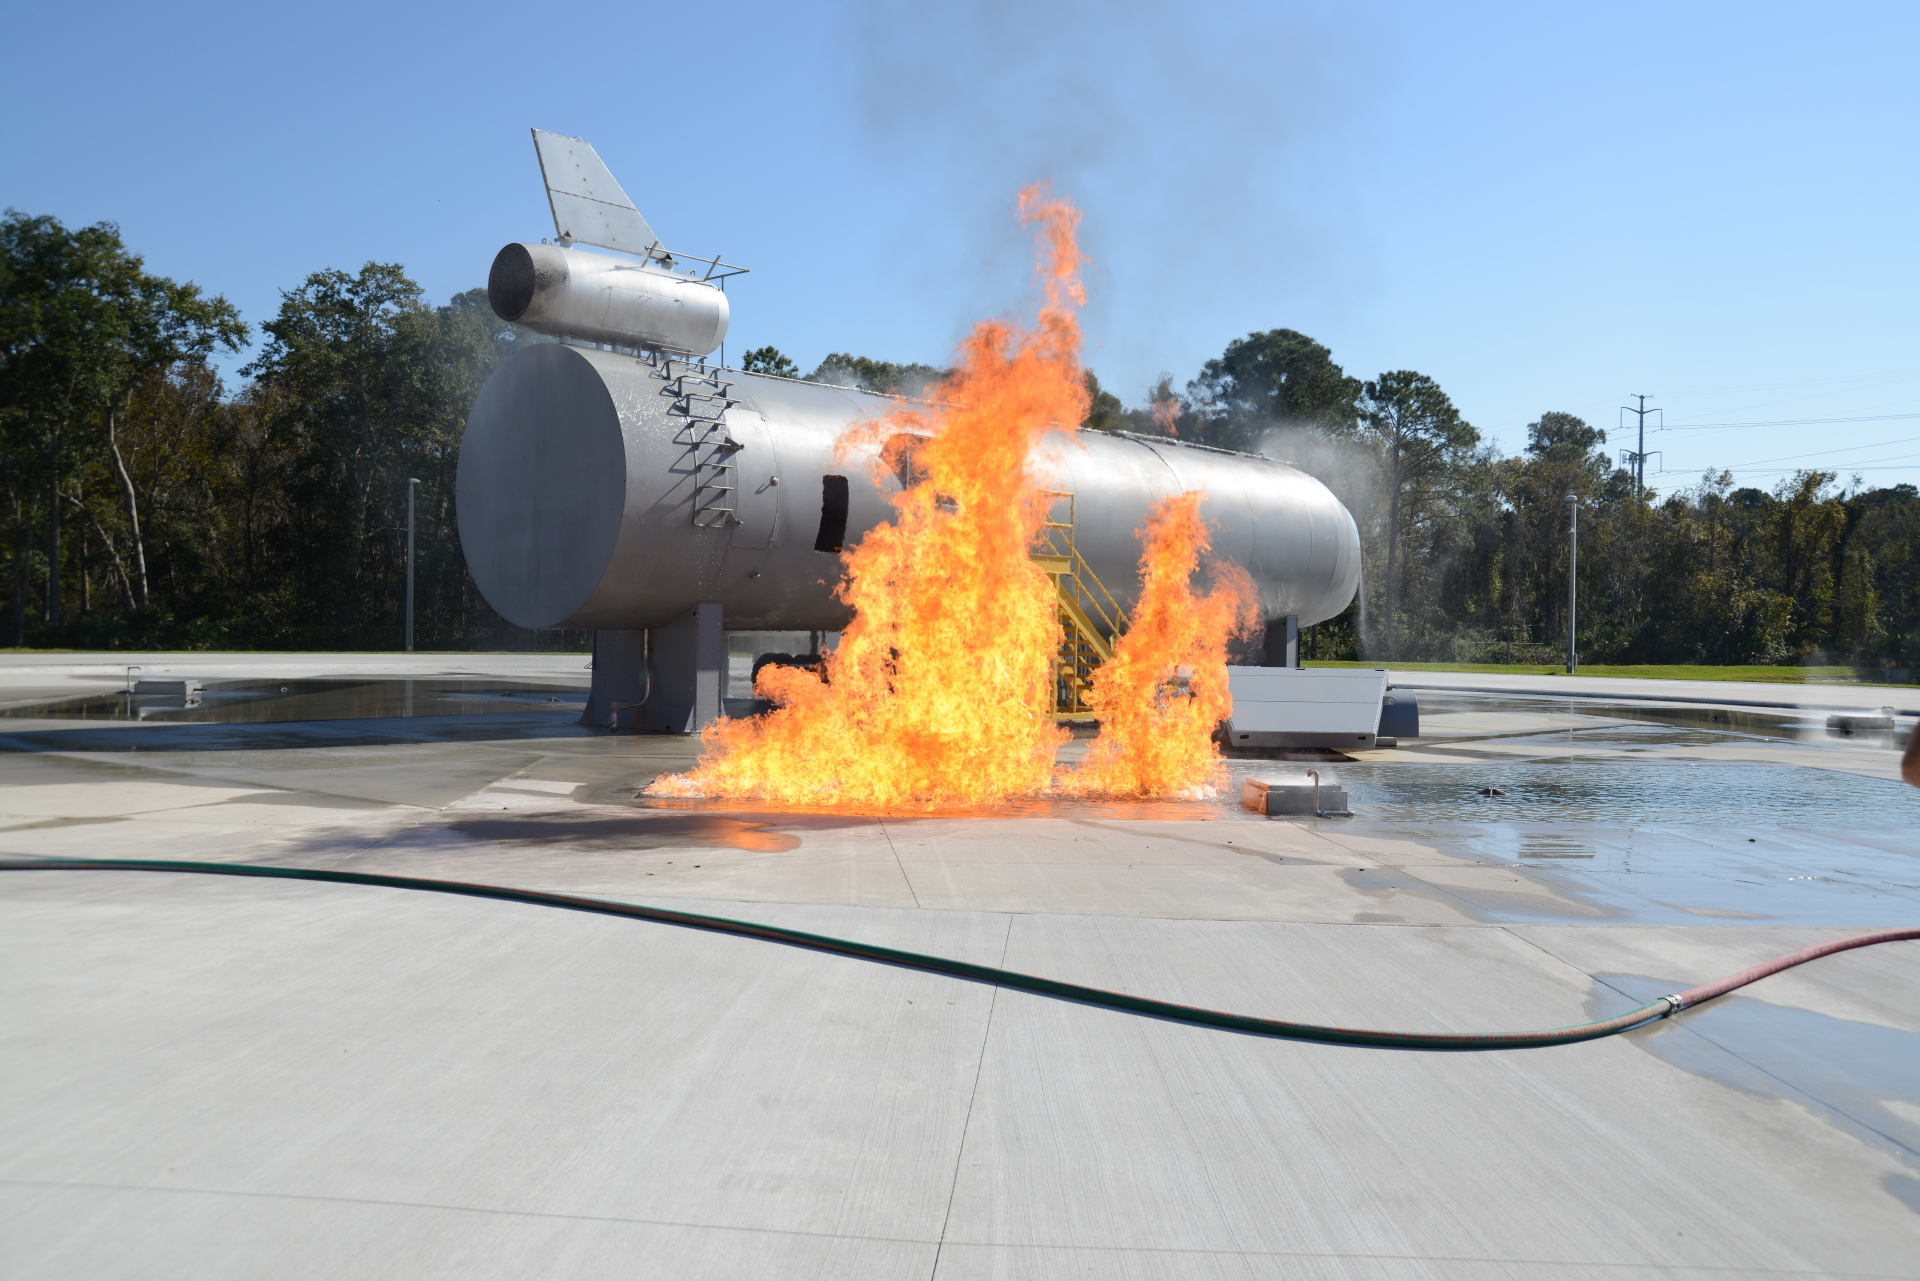 FCSJ MARITIME AND AIRCRAFT FIRE TRAINING OPERATIONS